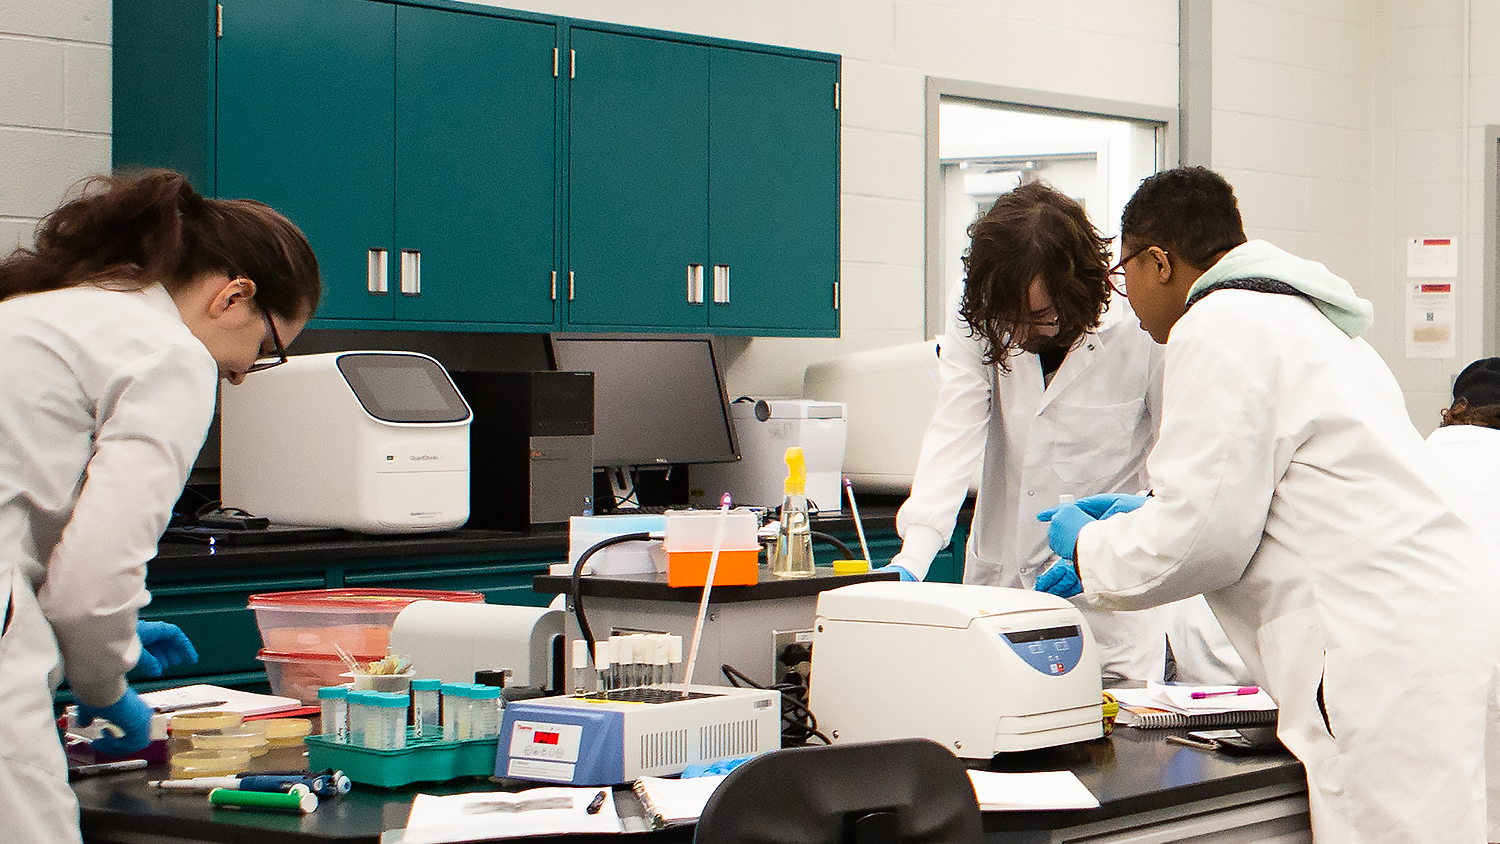 students working in the genomics lab during class